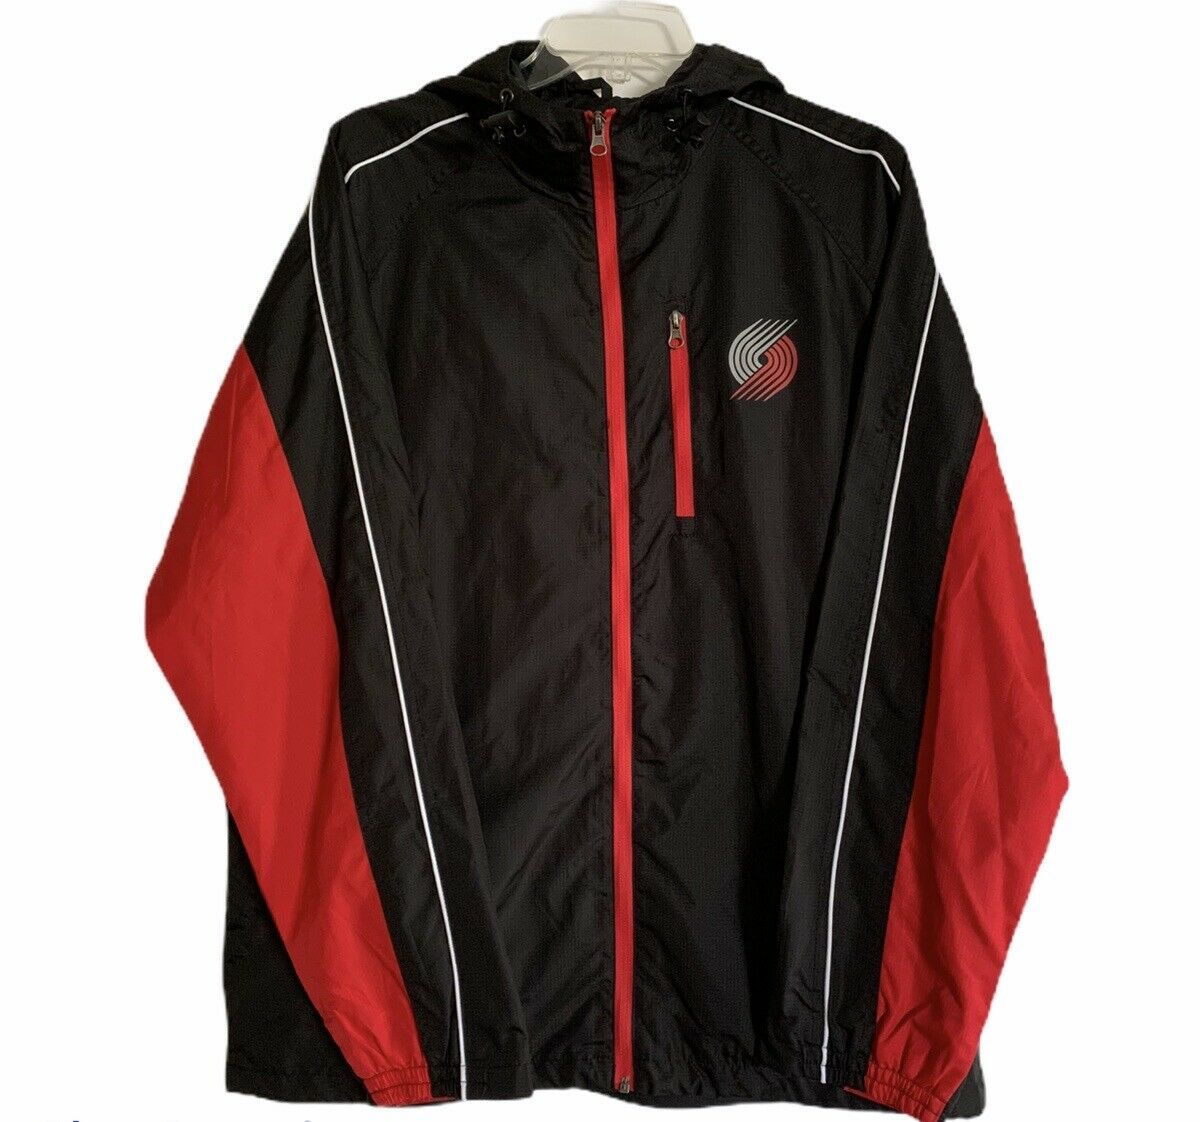 Primary image for Men's Carl Banks Portland Trail Blazers Full Zip Windbreaker Jacket Sz MD NWT